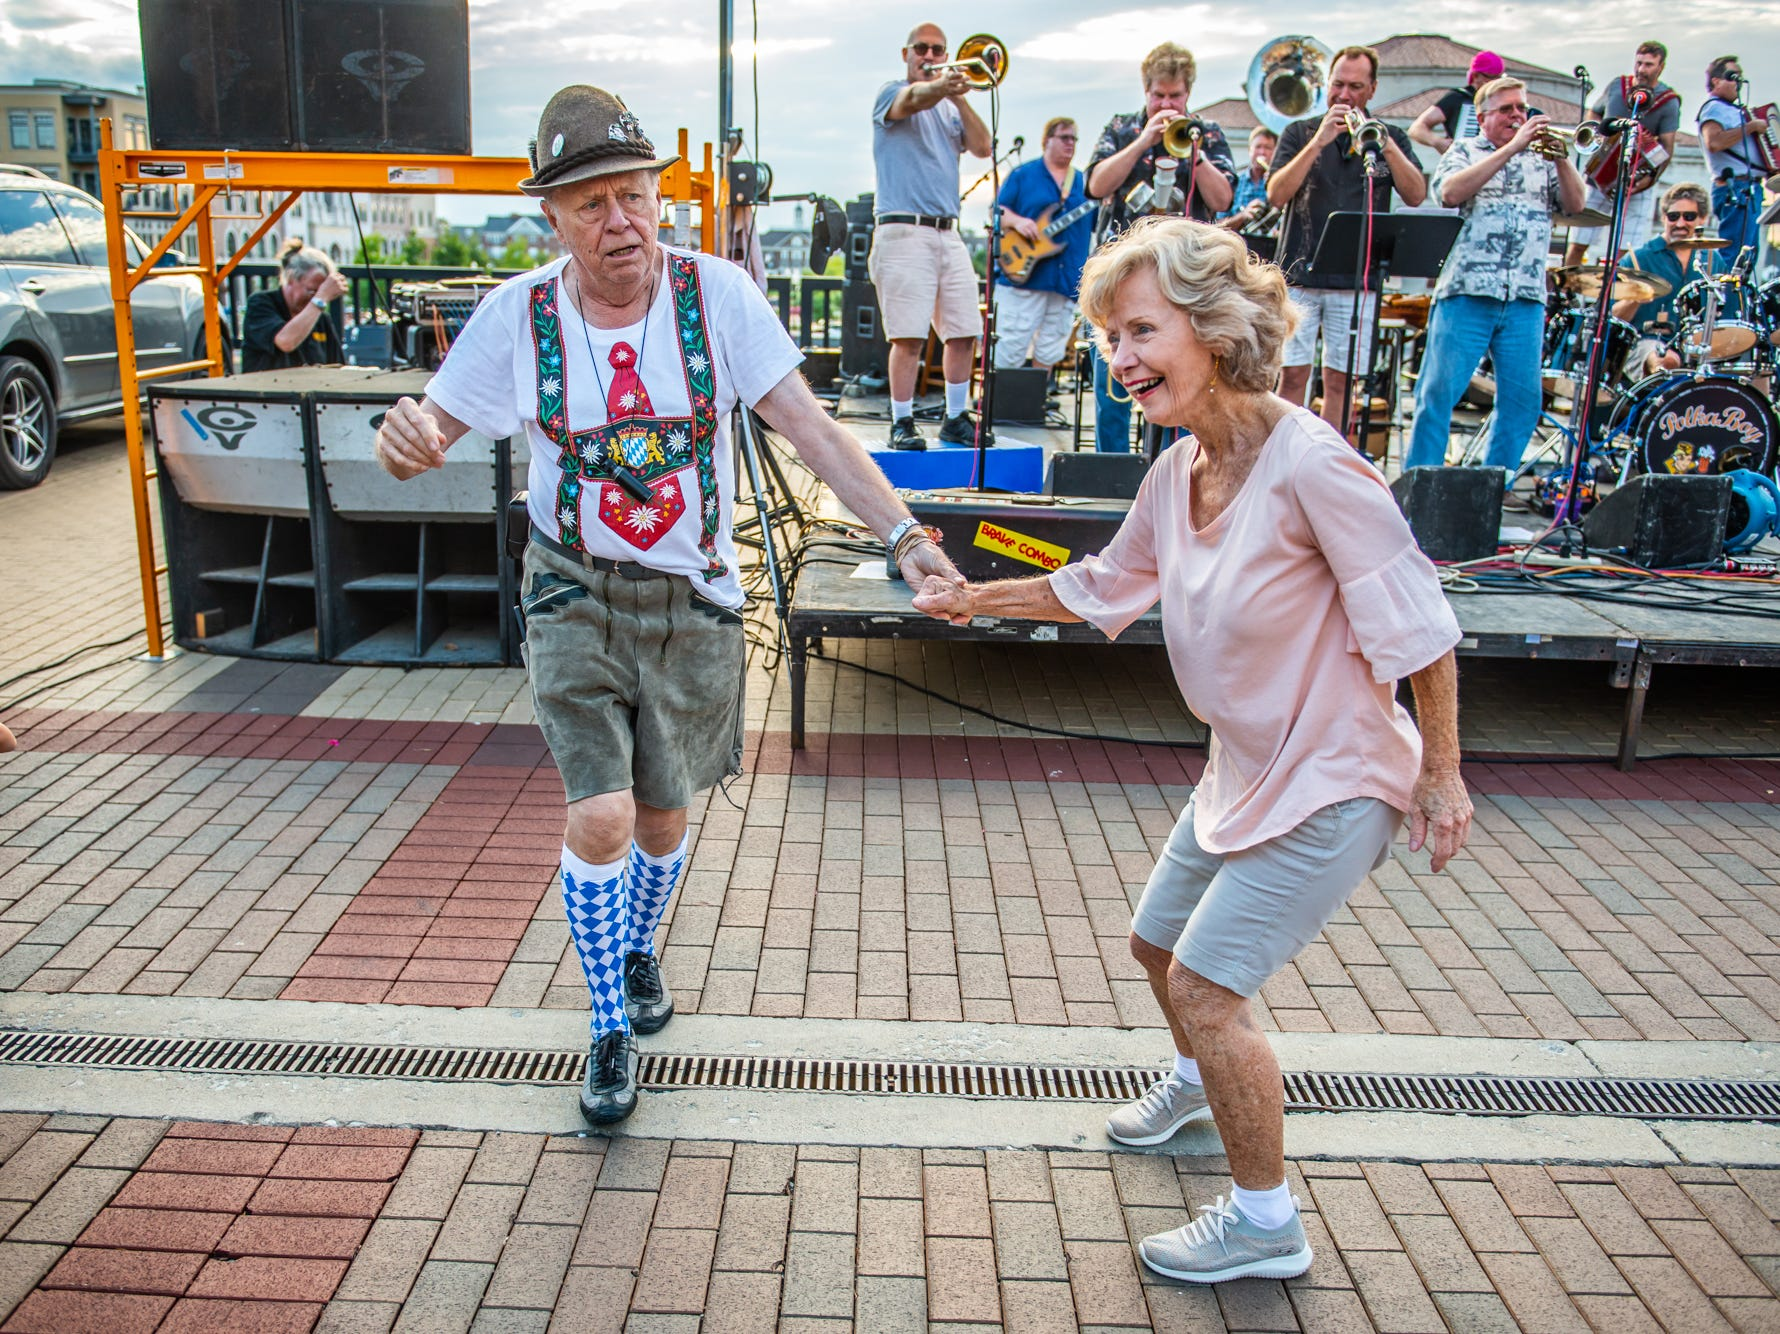 The City of Carmel's annual Oktoberfest celebration was full of dancing and fun for all at the Carmel City Center on September 21, 2018.